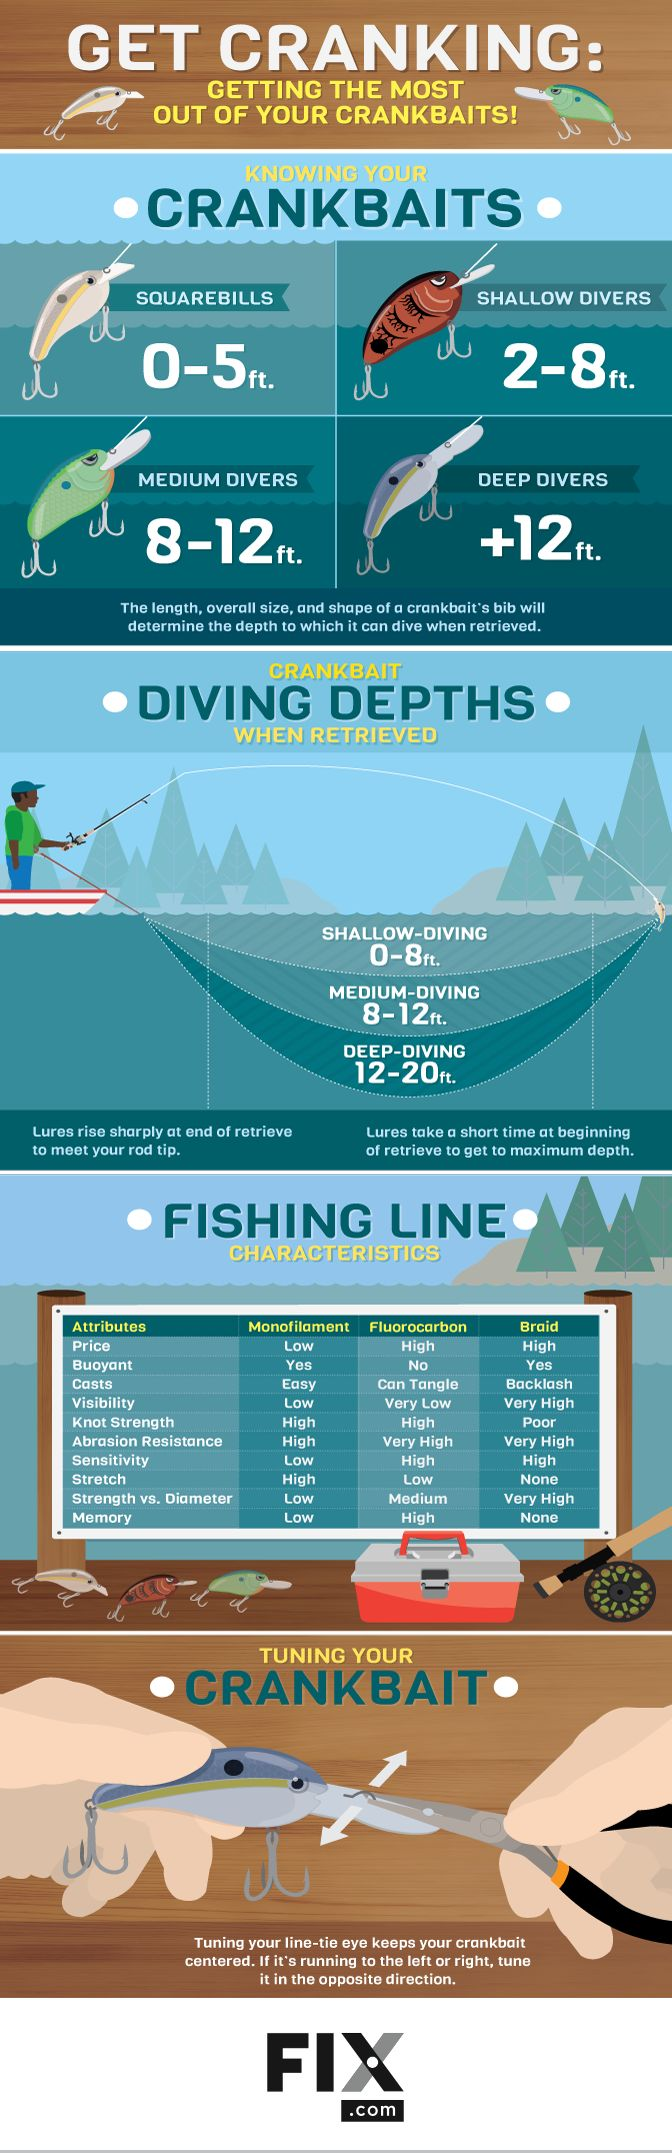 Get Cranking! How to Get the Most out of Your Crankbaits #infographic #Fishing